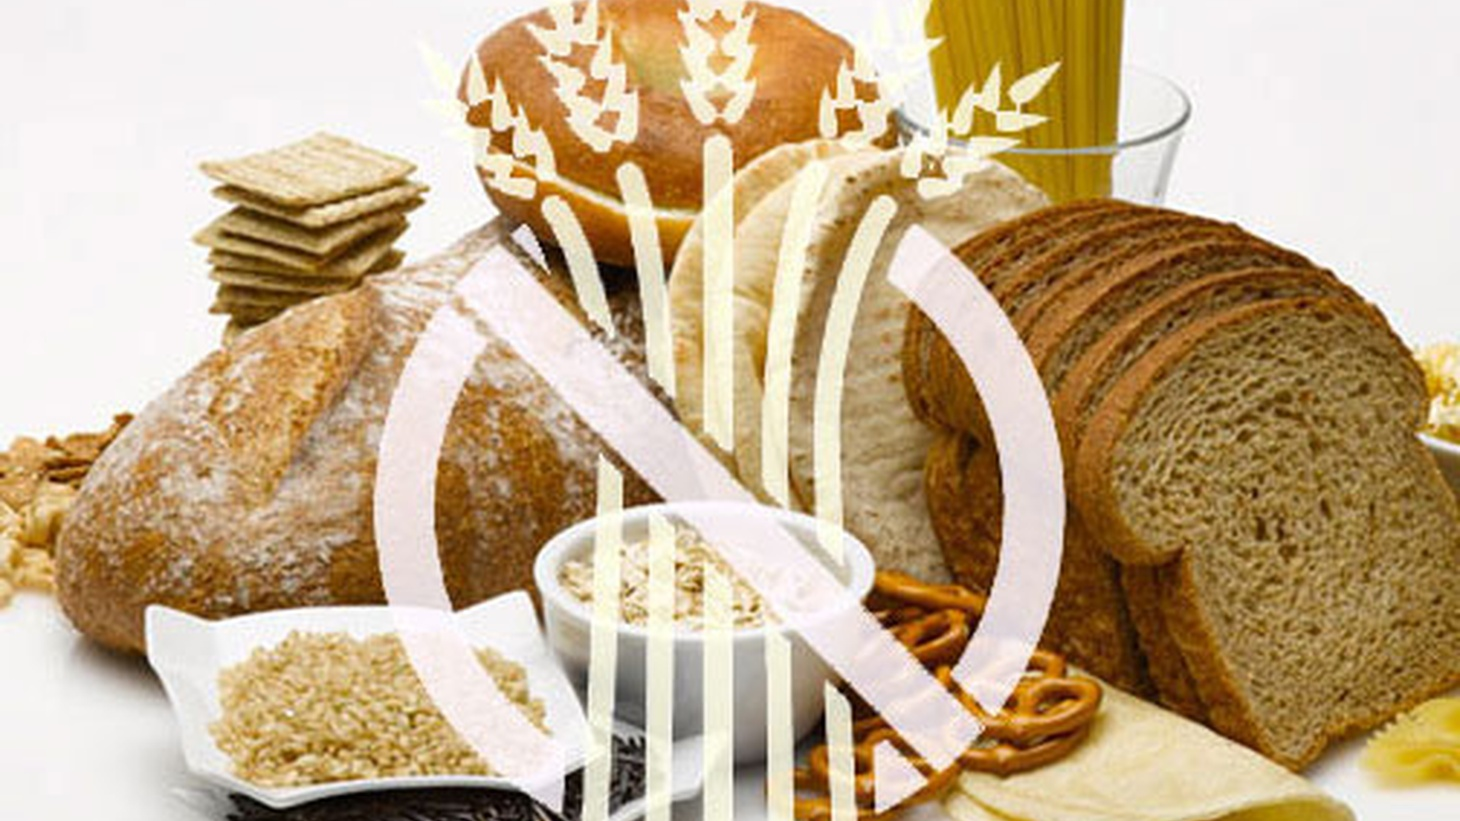 Gluten-free food is crowding the grocery shelves, and food companies are raking in billions of dollars. Many consumers insist it makes them feel better. But what's replacing the gluten? We separate fact from fiction.